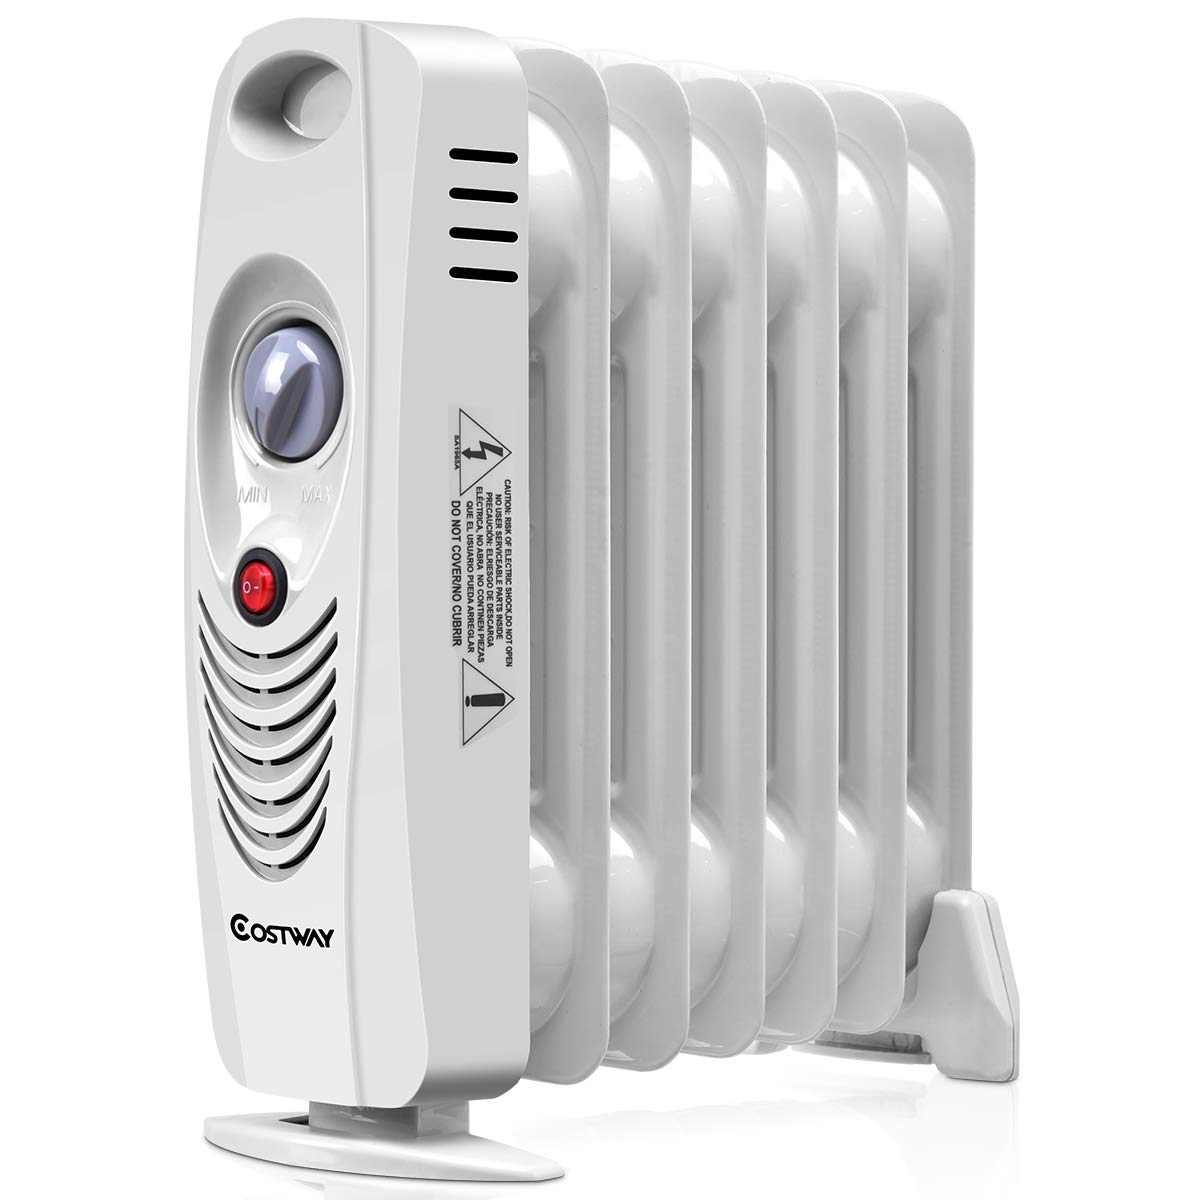 COSTWAY Oil Filled Radiator Heater, 700W Portable Space Heater with Adjustable Thermostat